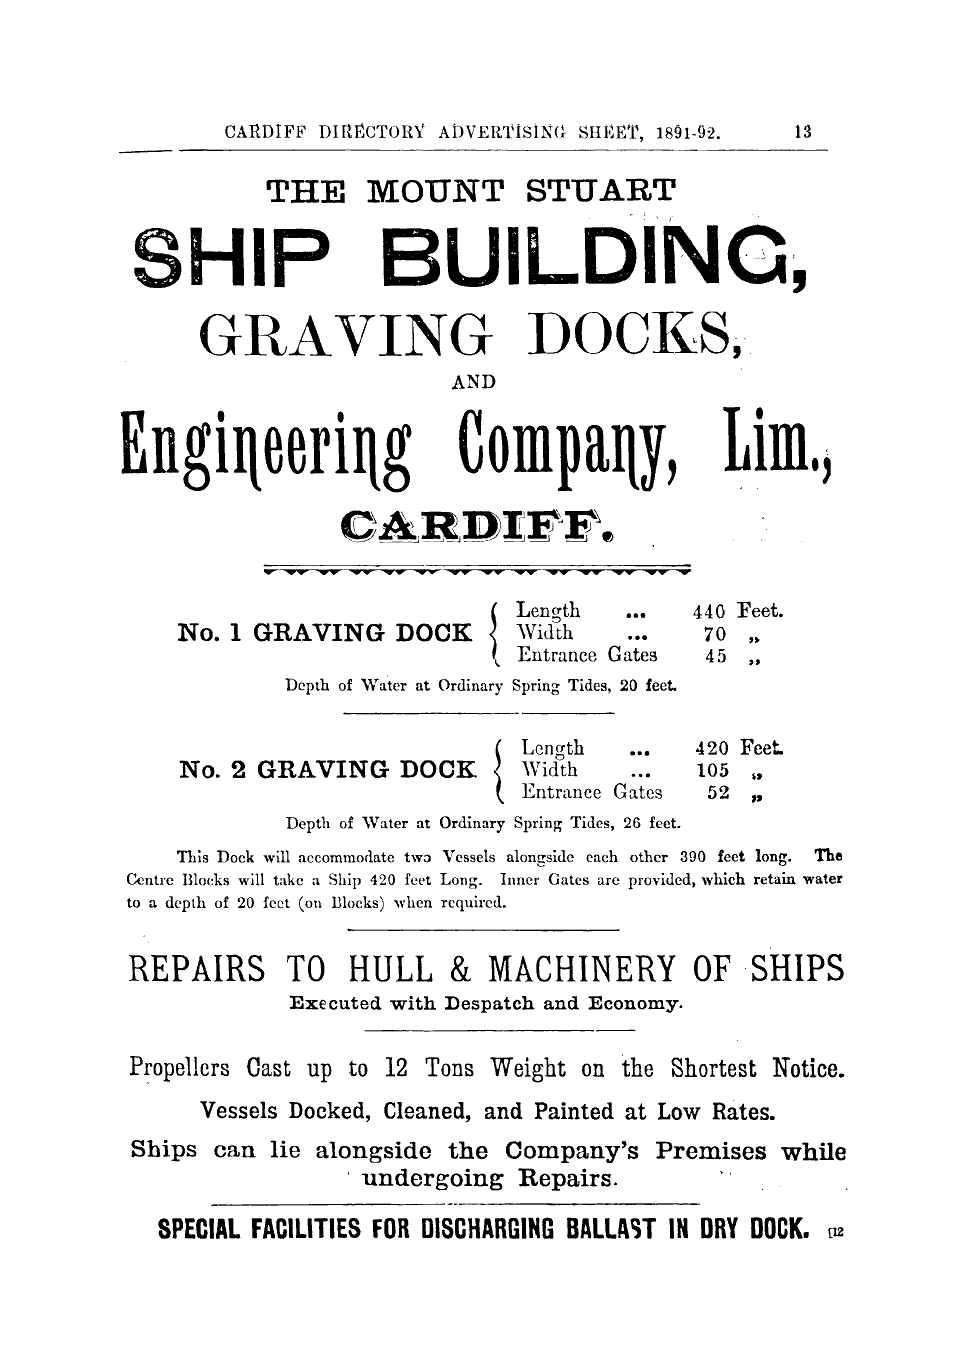 File:1891 Cardiff i0013.png